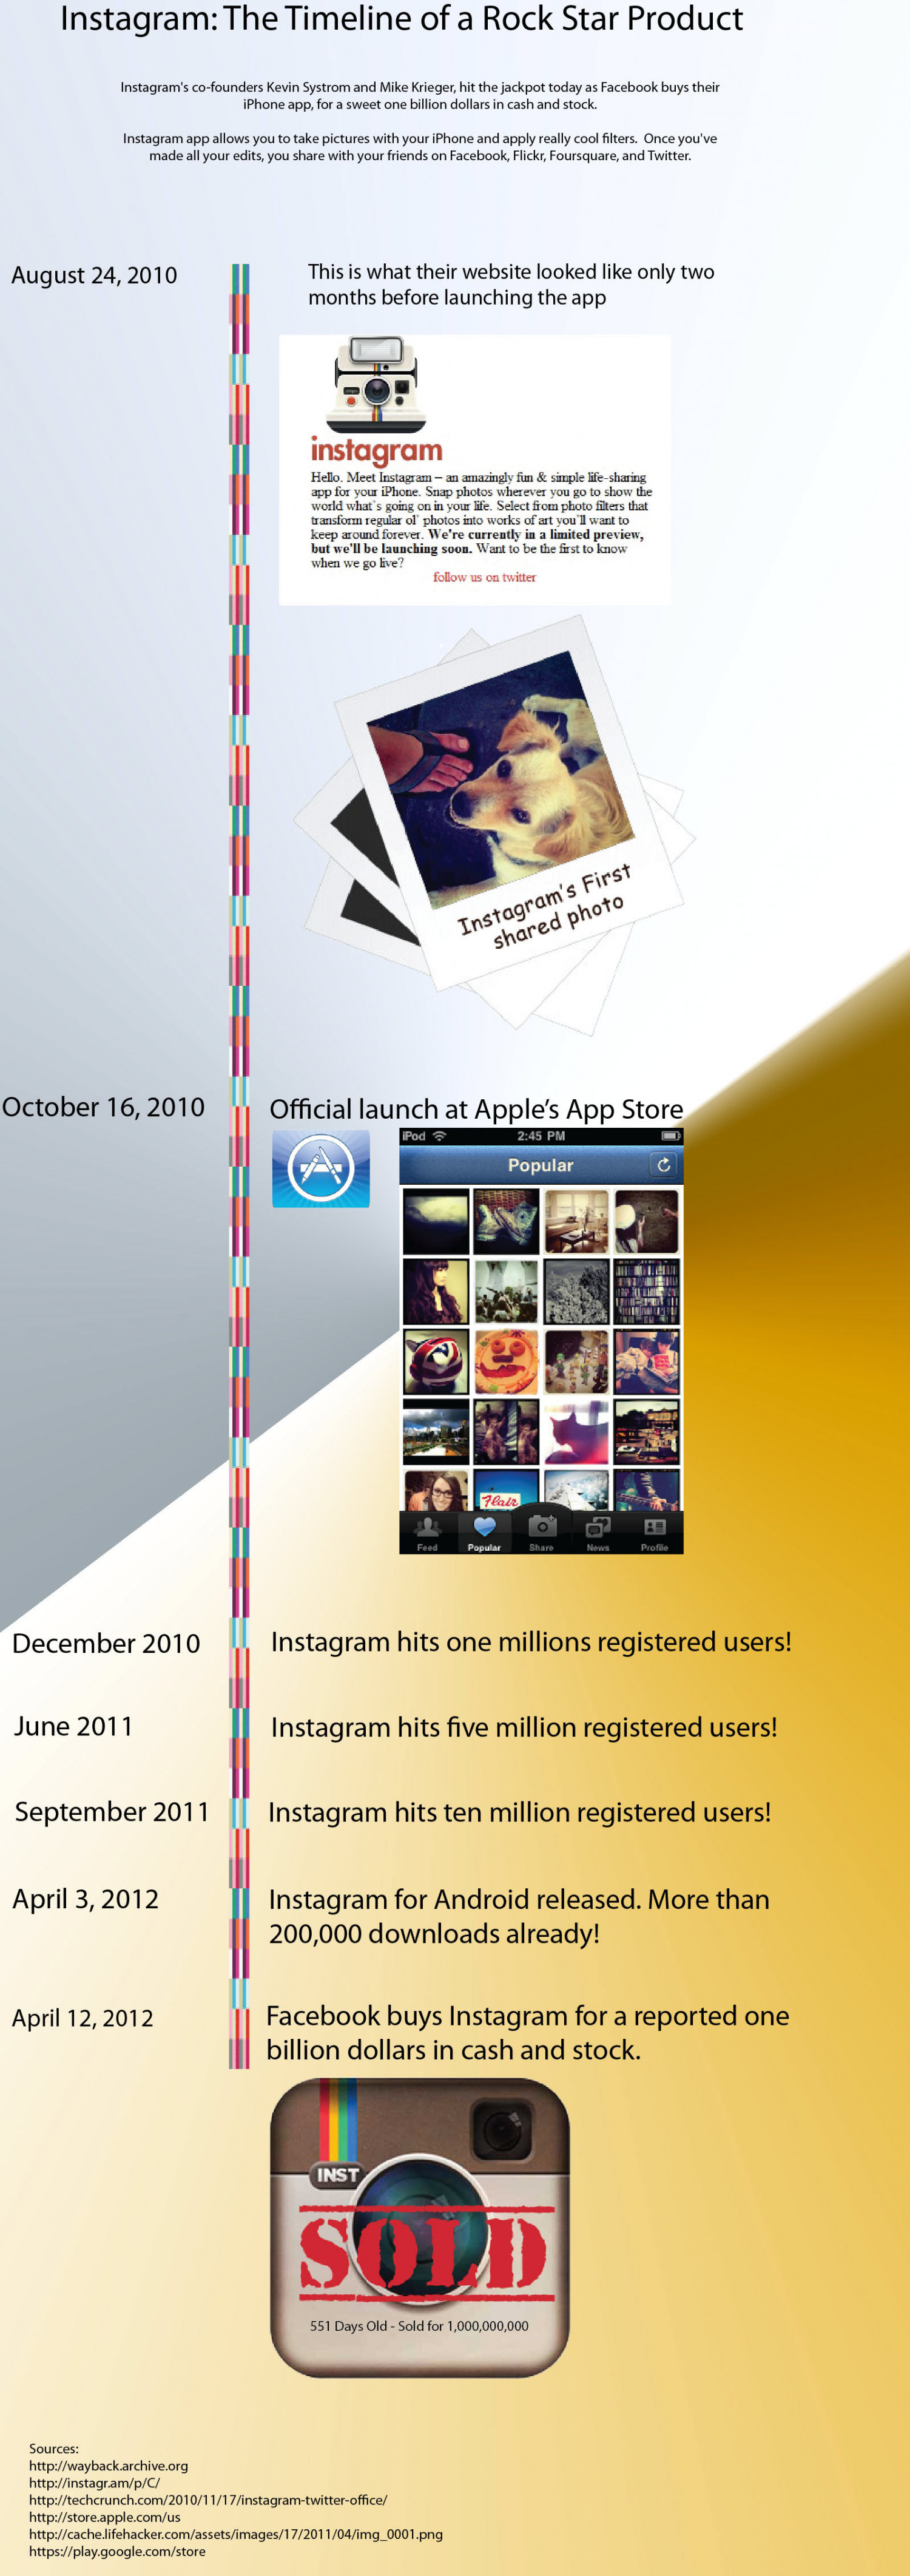 Instagram: The Timeline Infographic